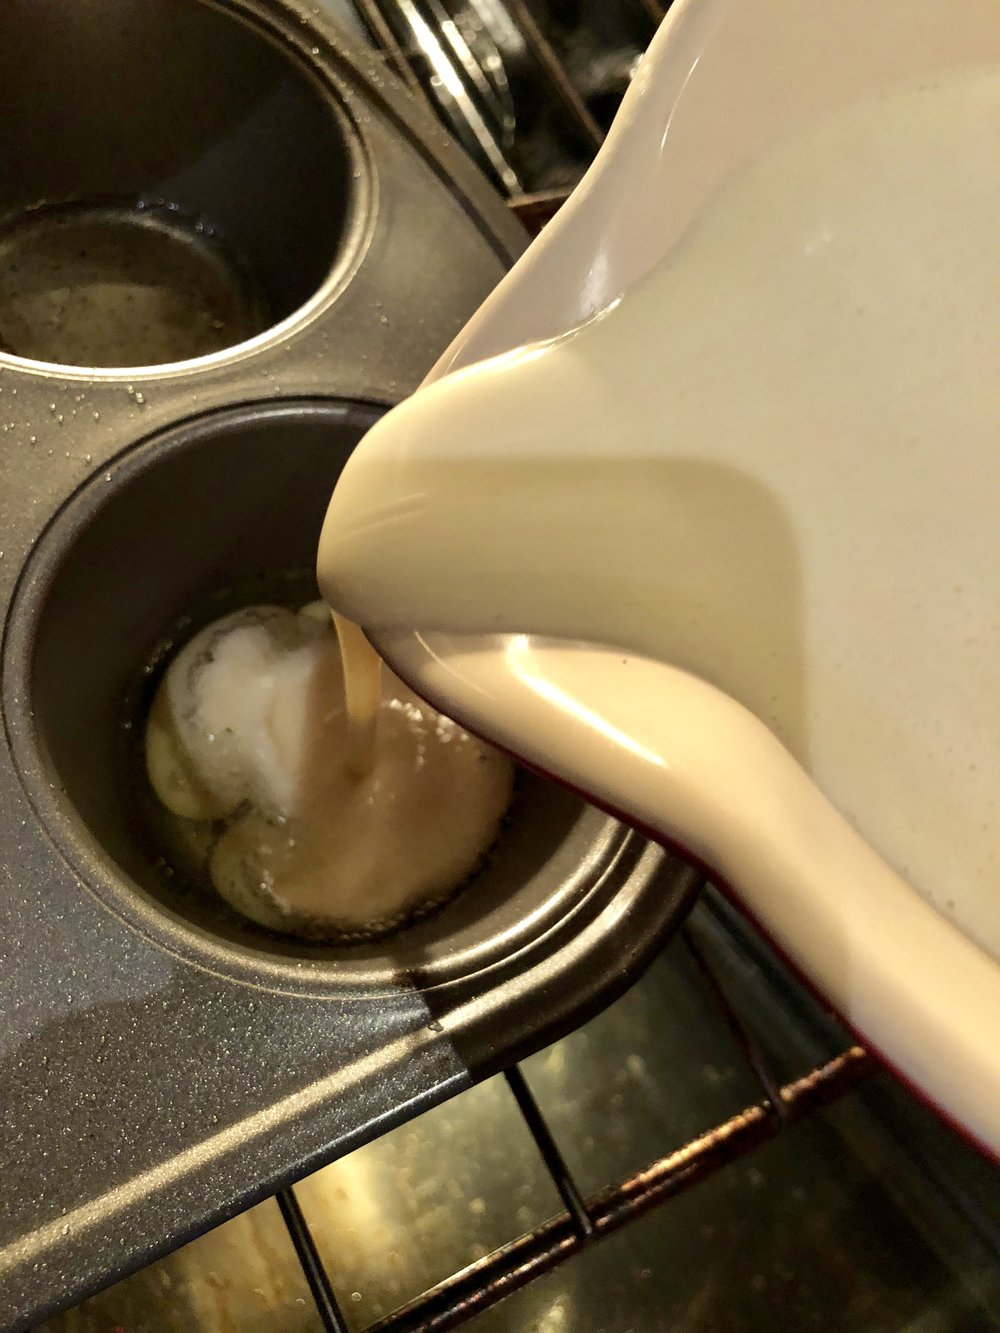 Poring the batter into smoking hot pan and oil makes the perfect Yorkshire Pudding!